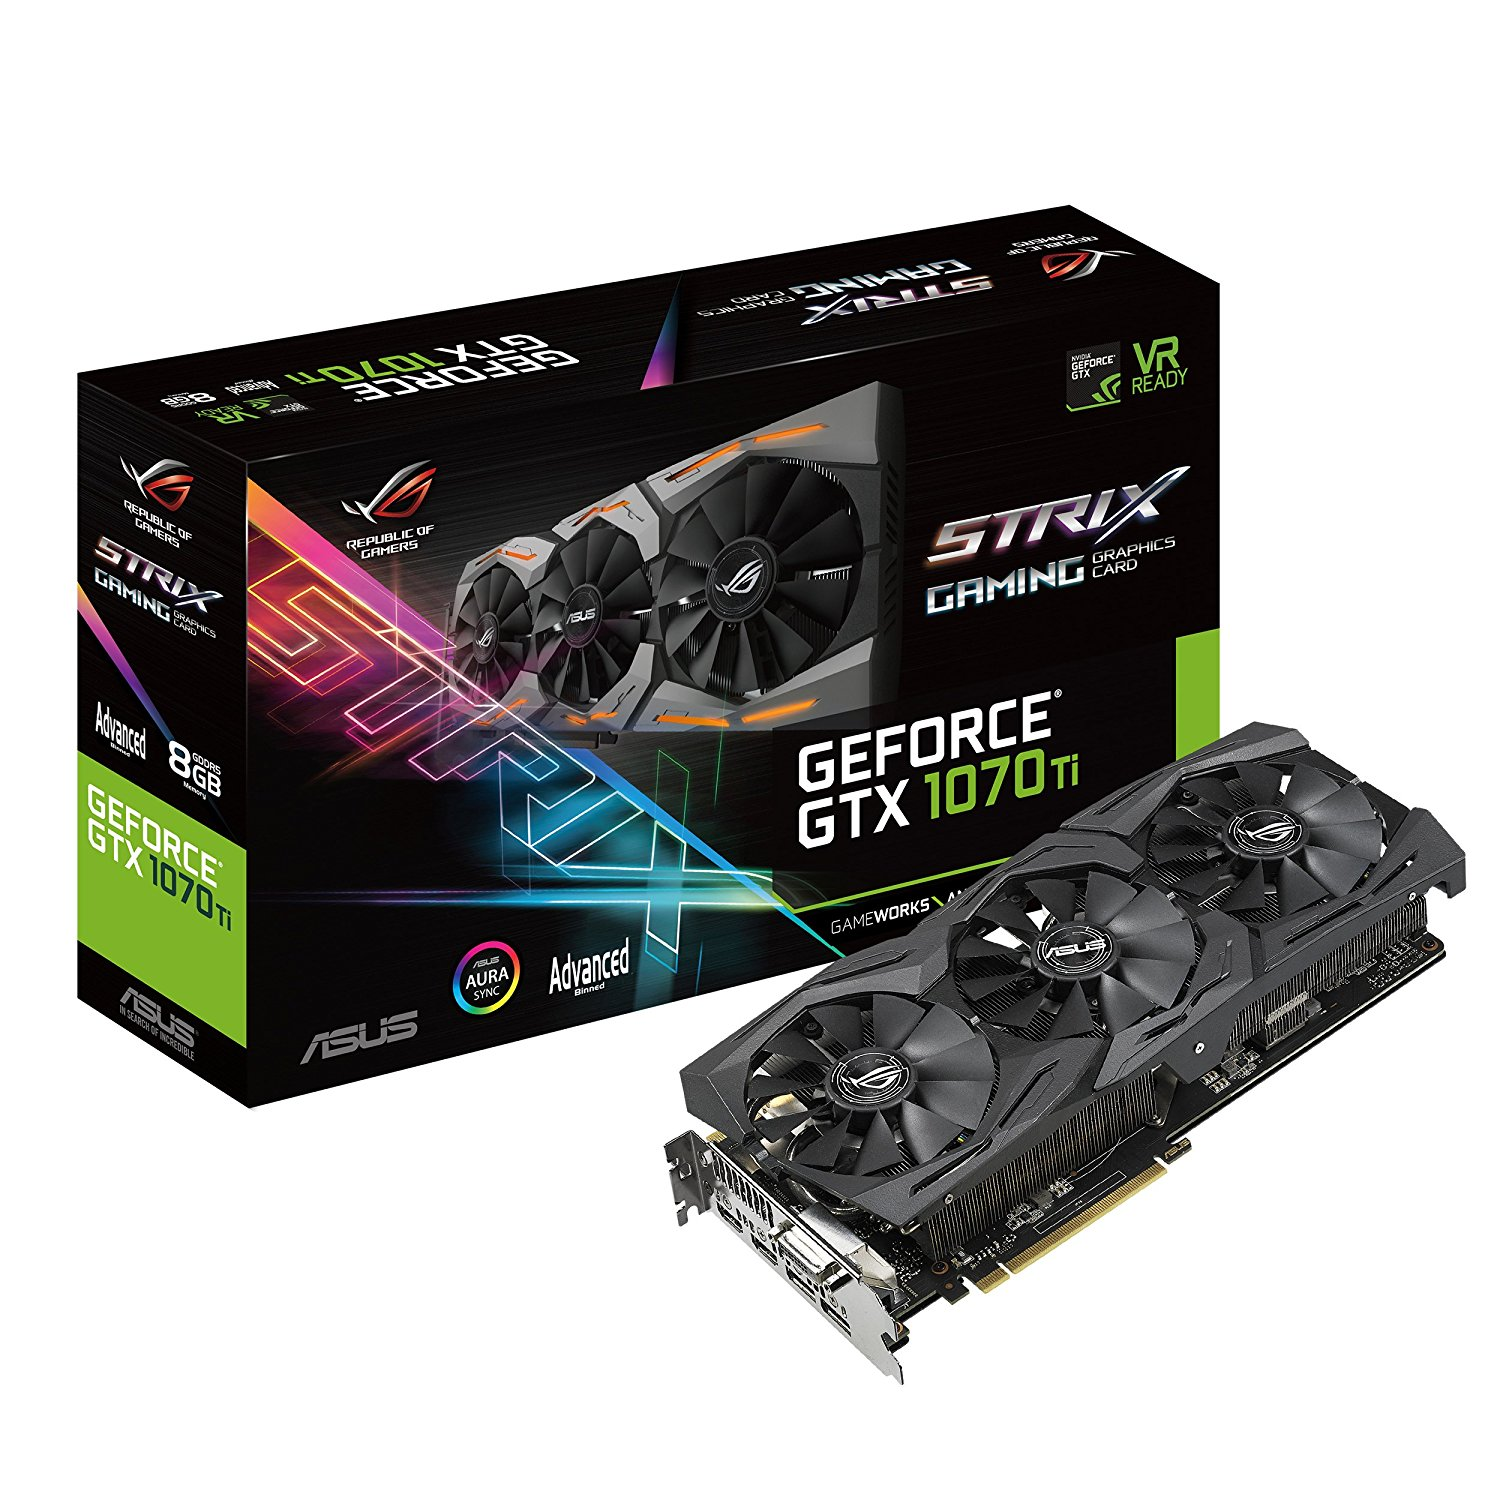 ASUS ROG STRIX GTX 1070 TI ADVANCE EDITION 8GB (256 BIT) DDR5